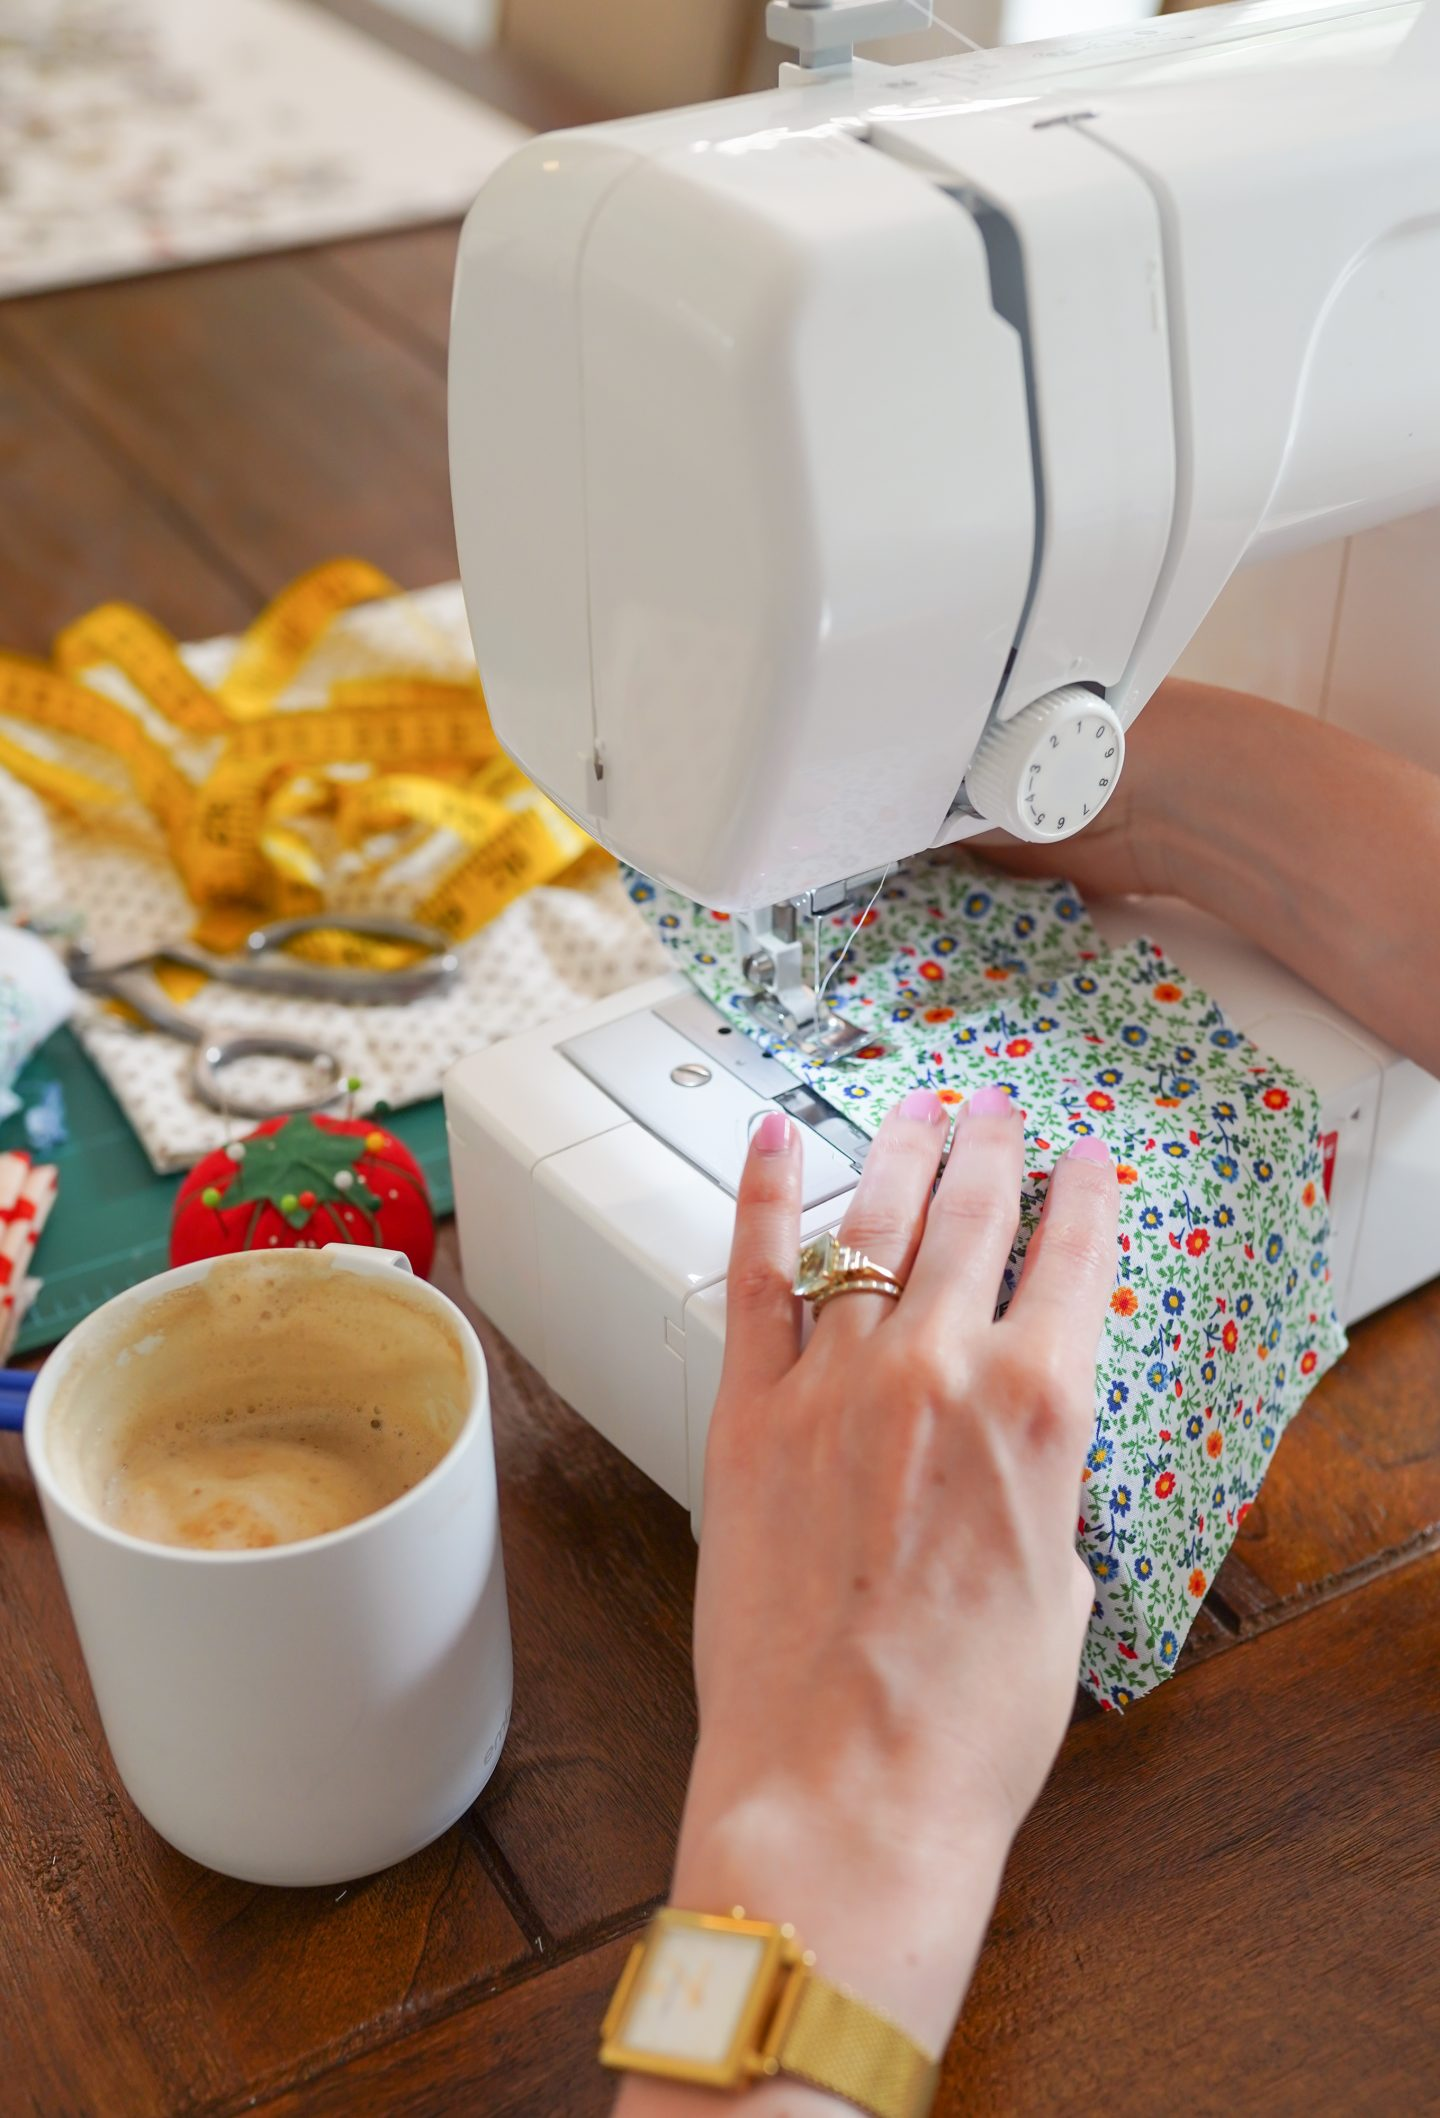 Ashley Brooke sewing napkins on her sewing machine